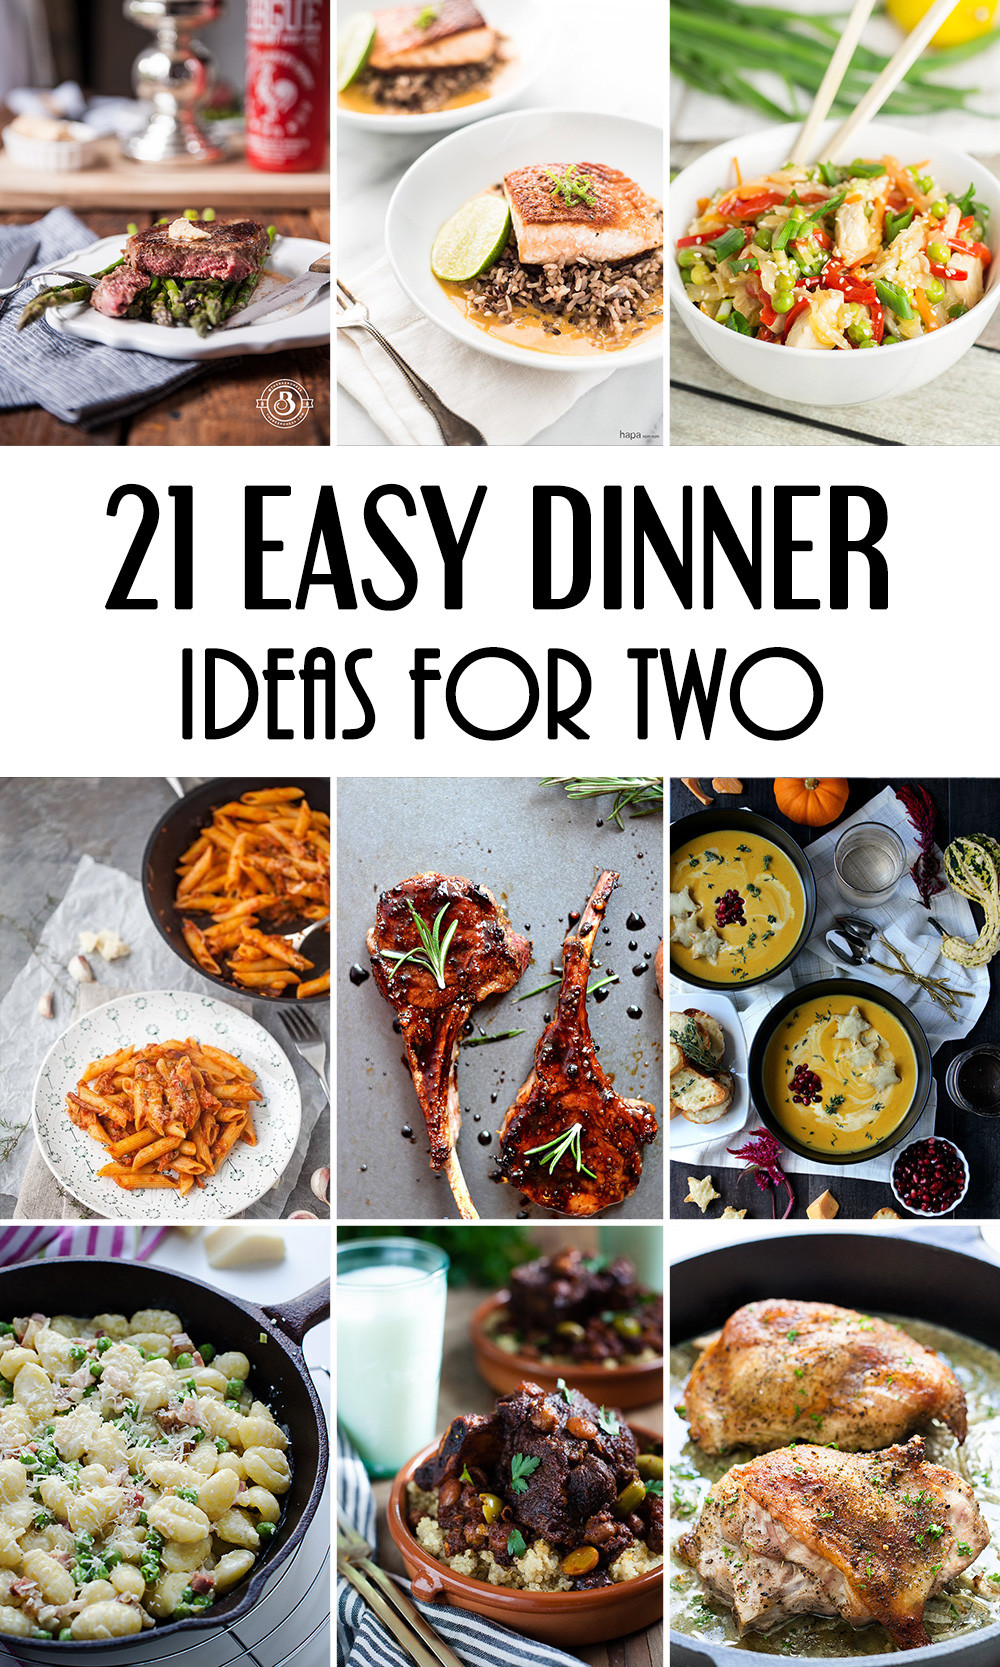 Healthy Dinner For One  21 Easy Dinner Ideas For Two That Will Impress Your Loved e